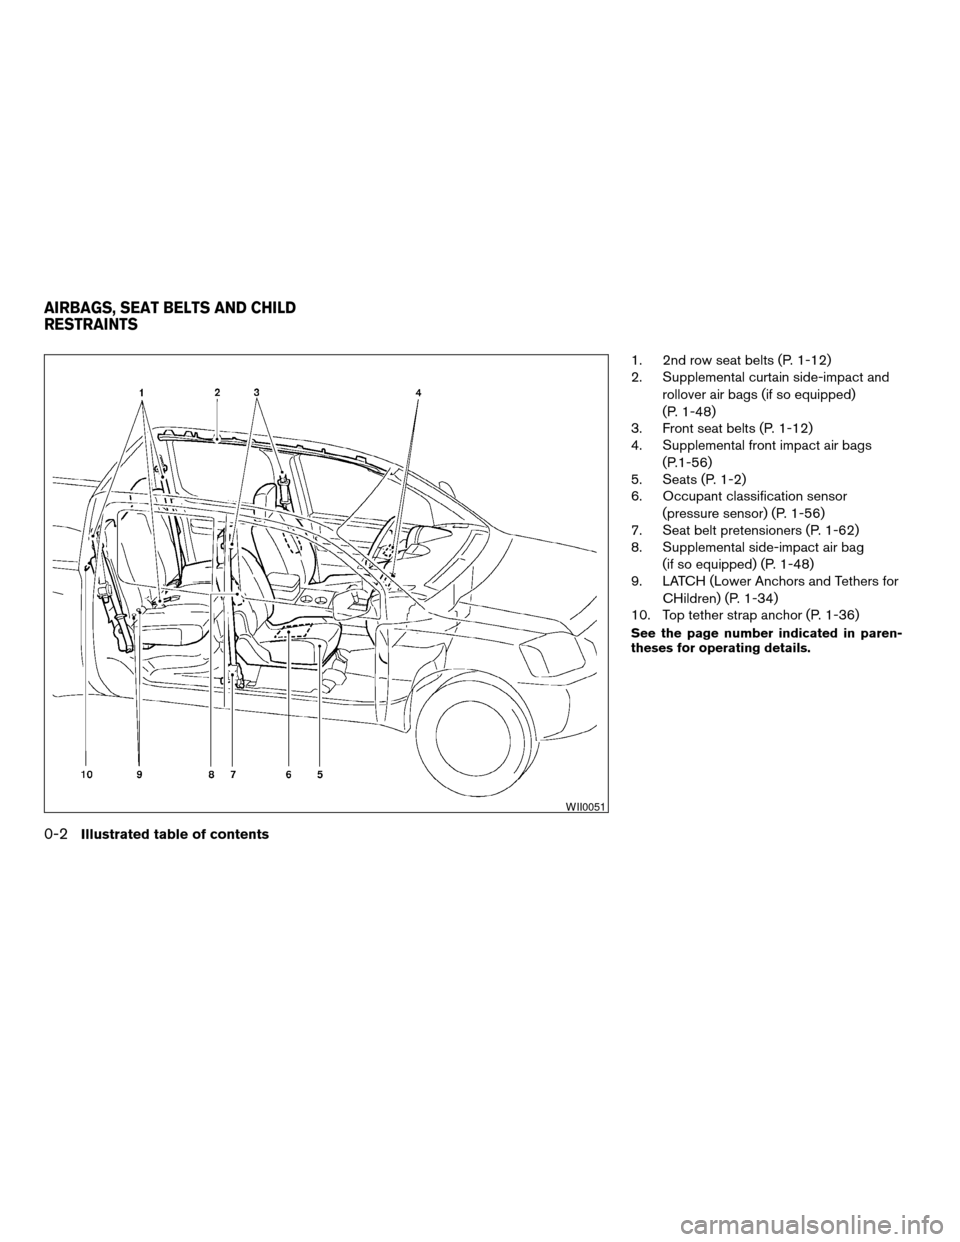 NISSAN FRONTIER 2006 D22 / 1.G Owners Manual